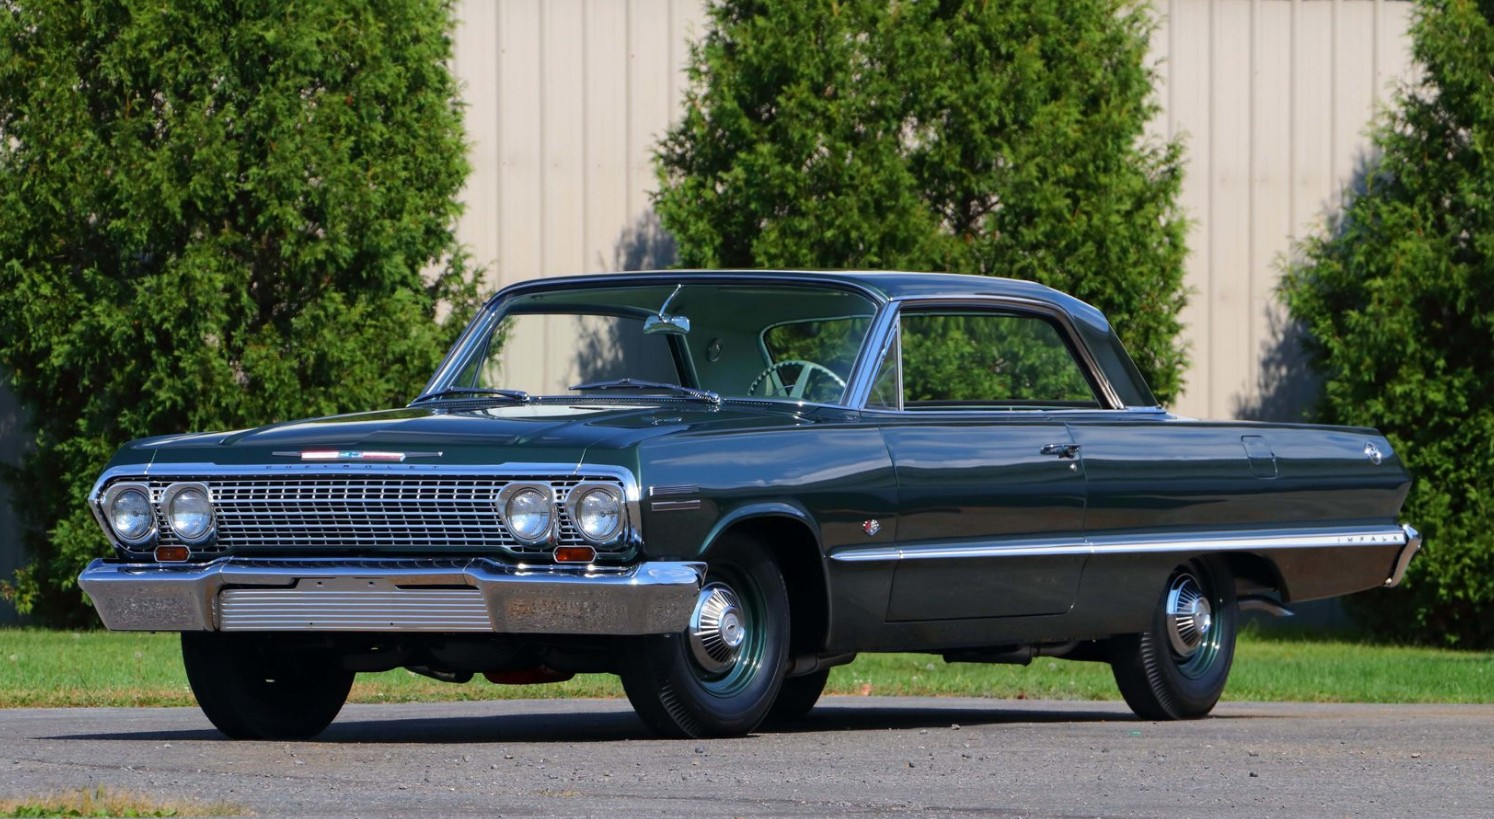 Chevrolet Impala Classiccarweekly Net